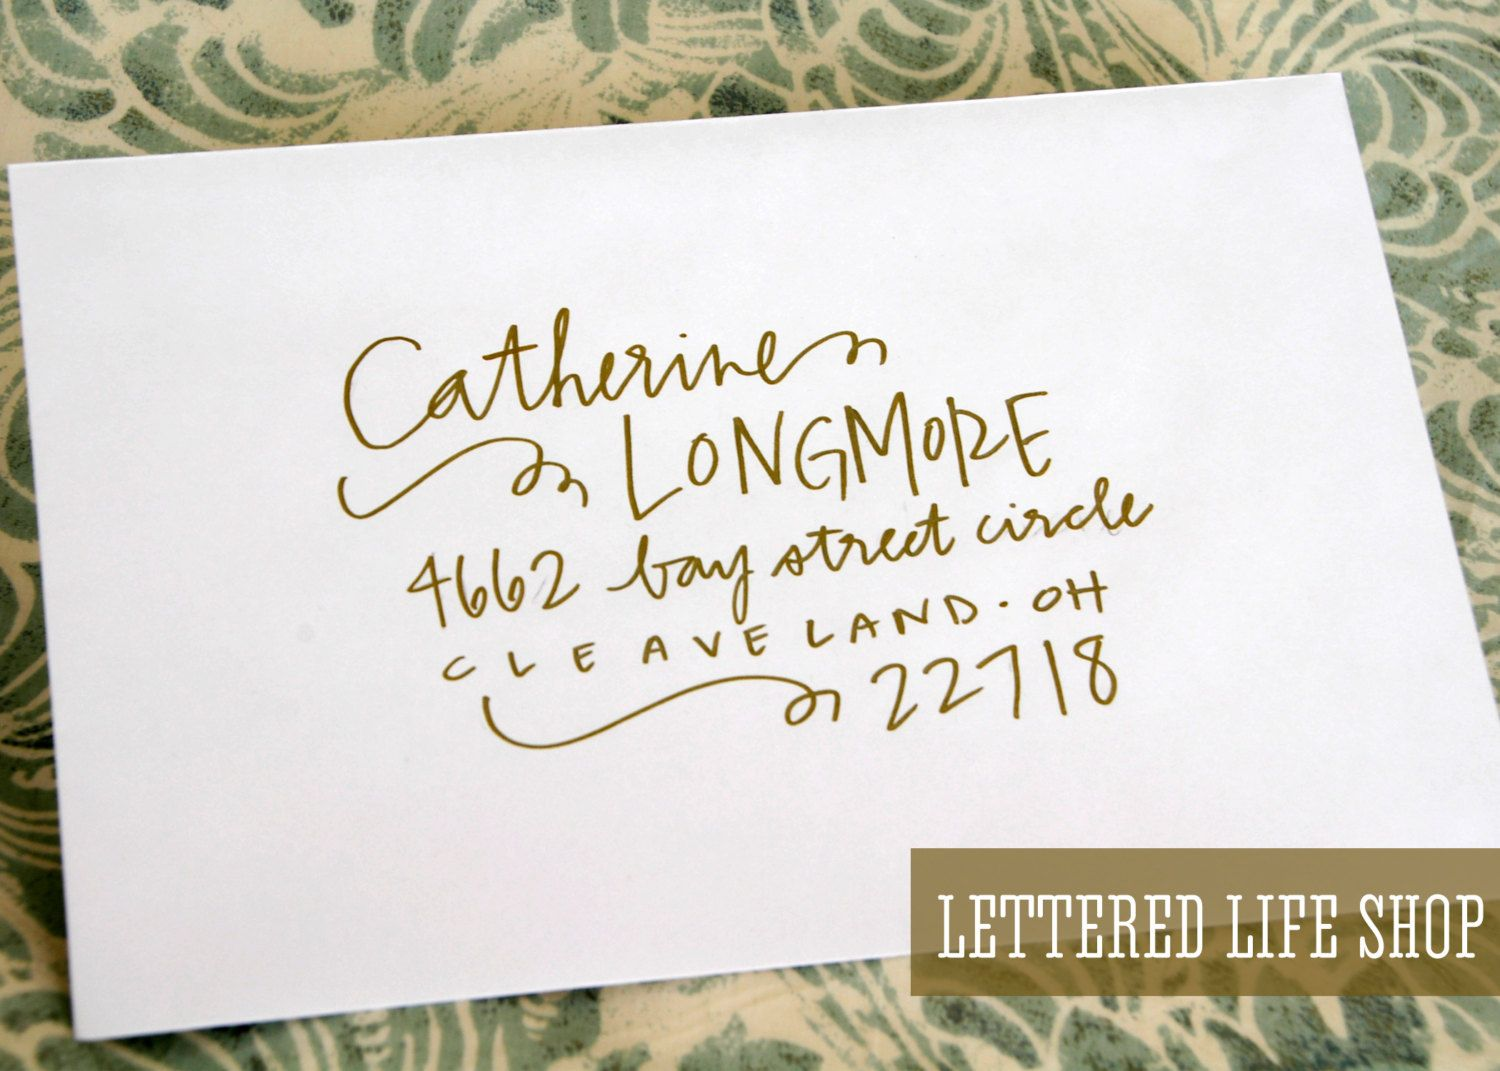 Best calligraphy gemma black images